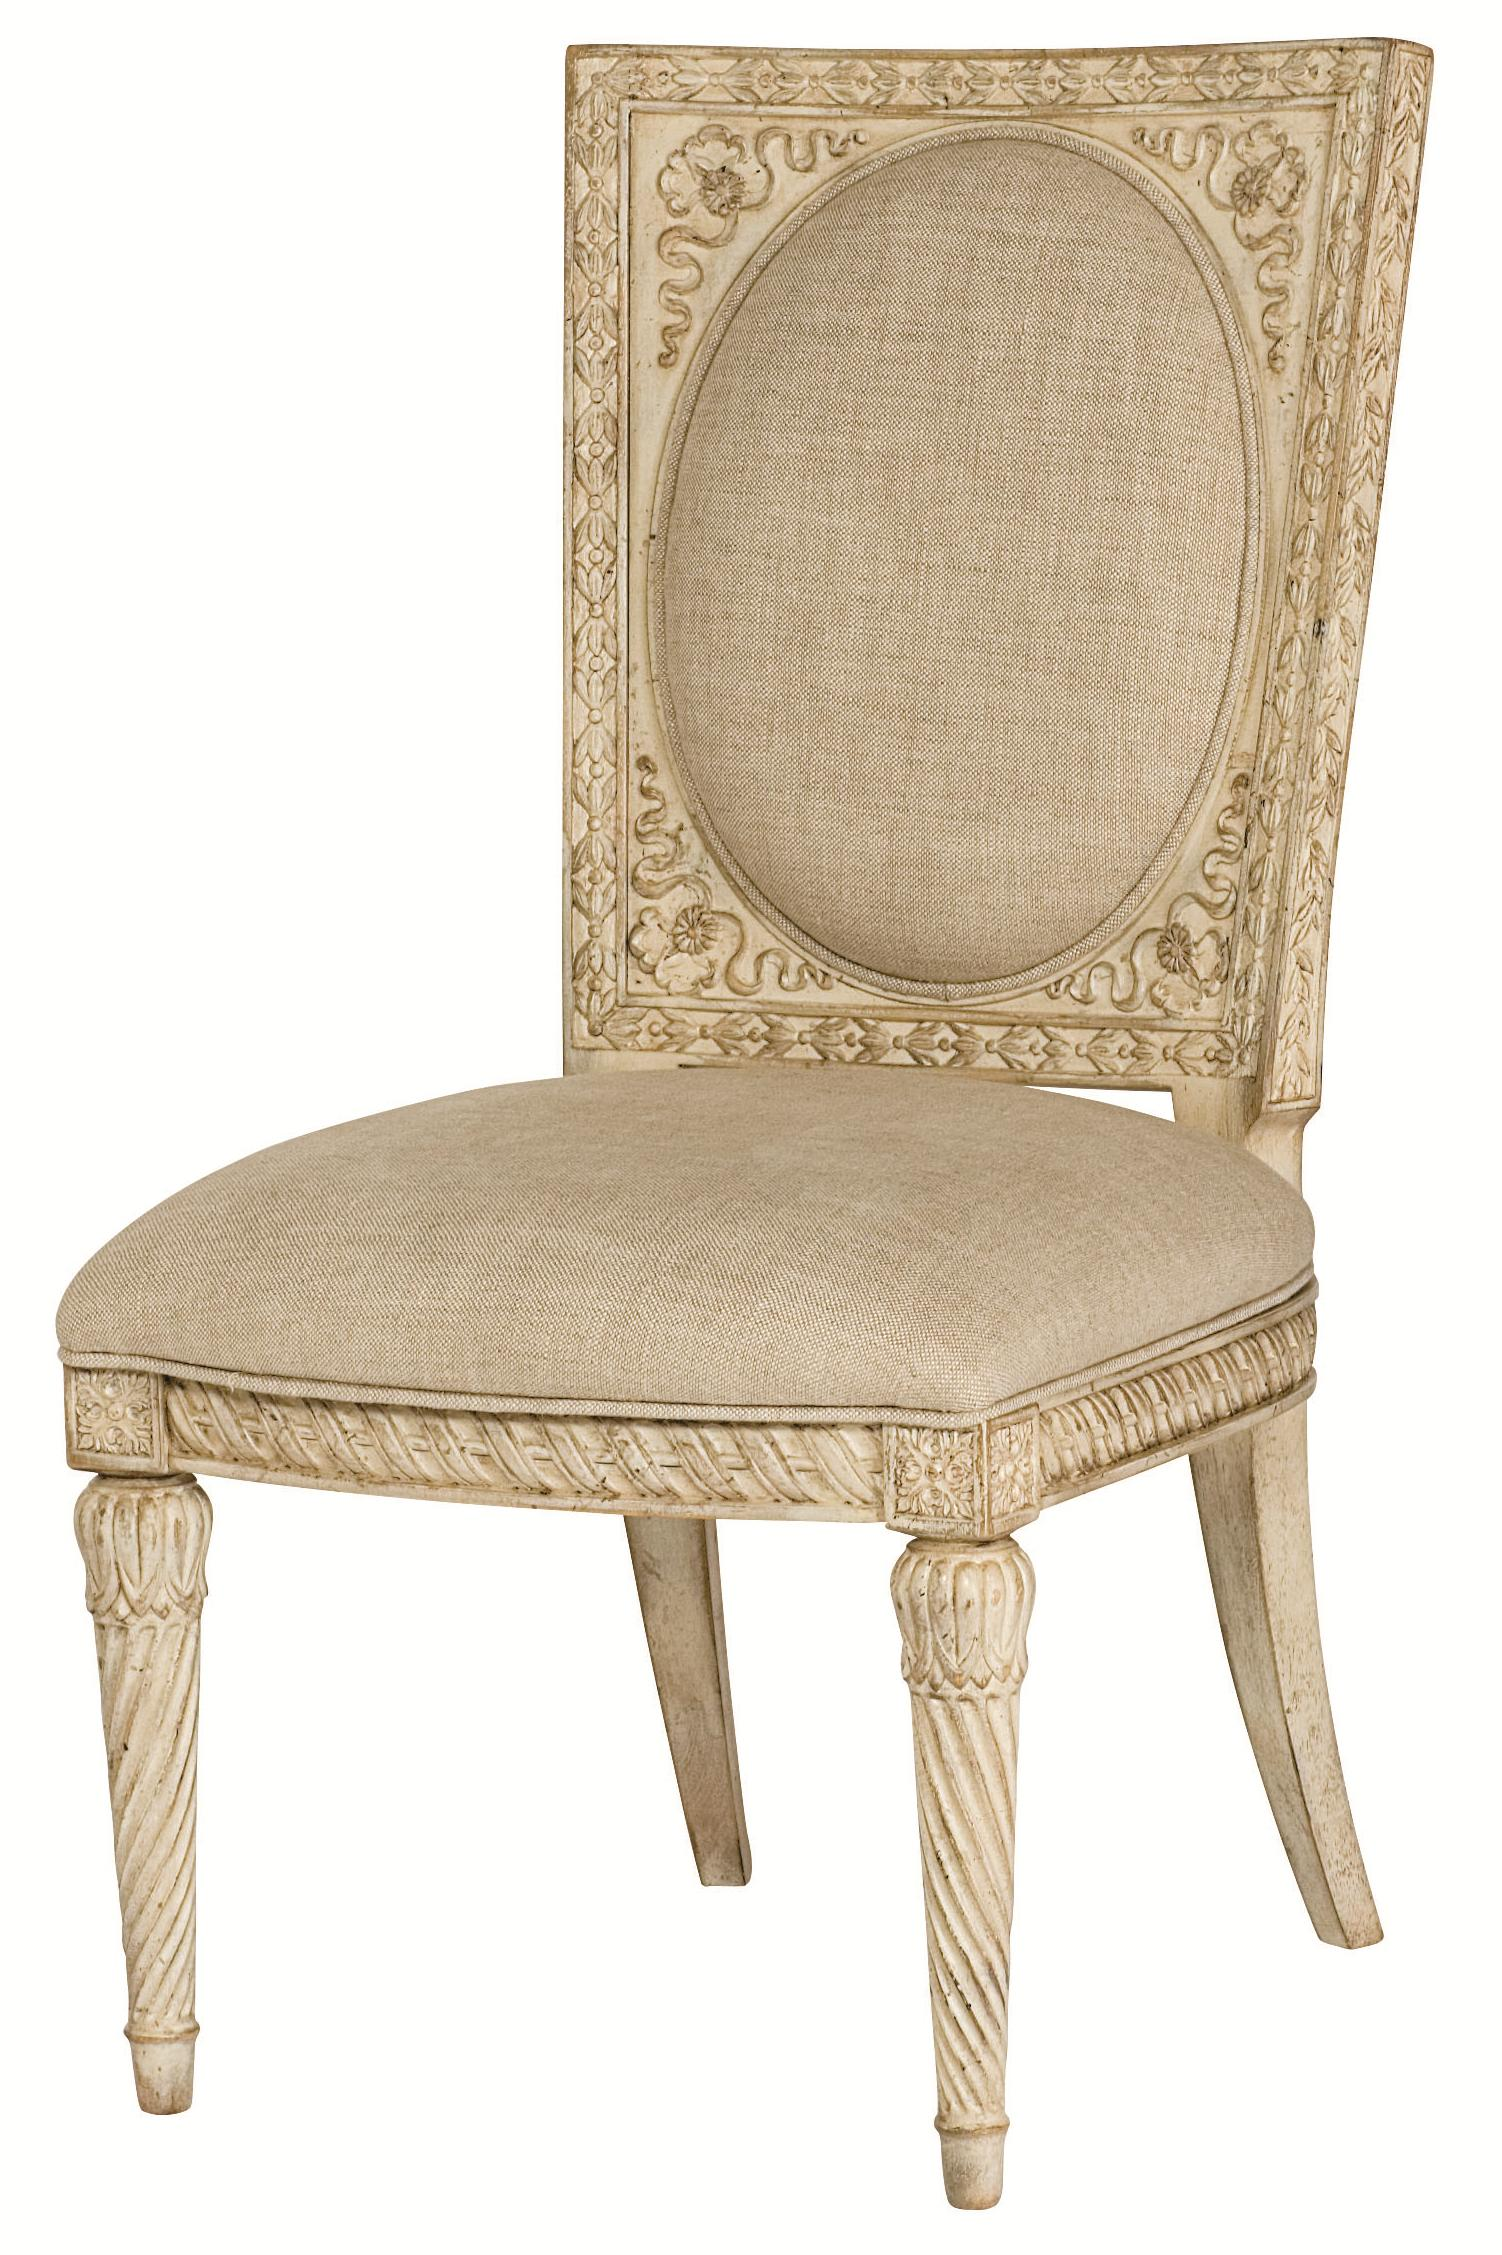 American Drew Jessica McClintock Home - The Boutique Collection Cane Back Accent Chair - Item Number: 217-638W